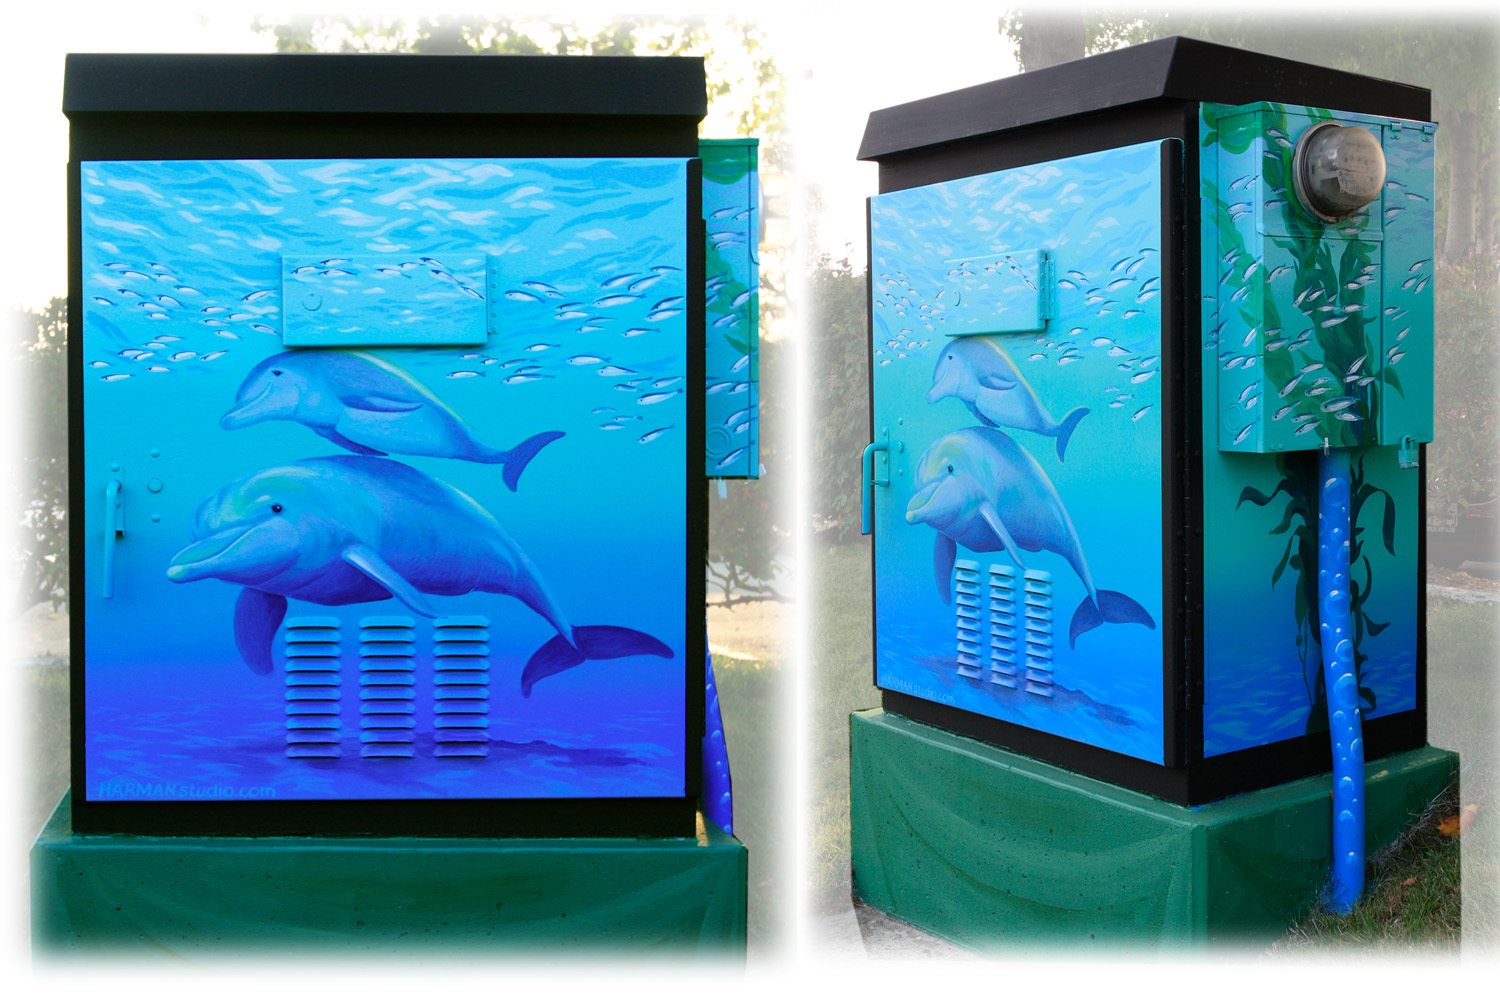 Dolphins are one of my very favorite subjects to paint. At 41st Ave & Capitola Mall entrance.